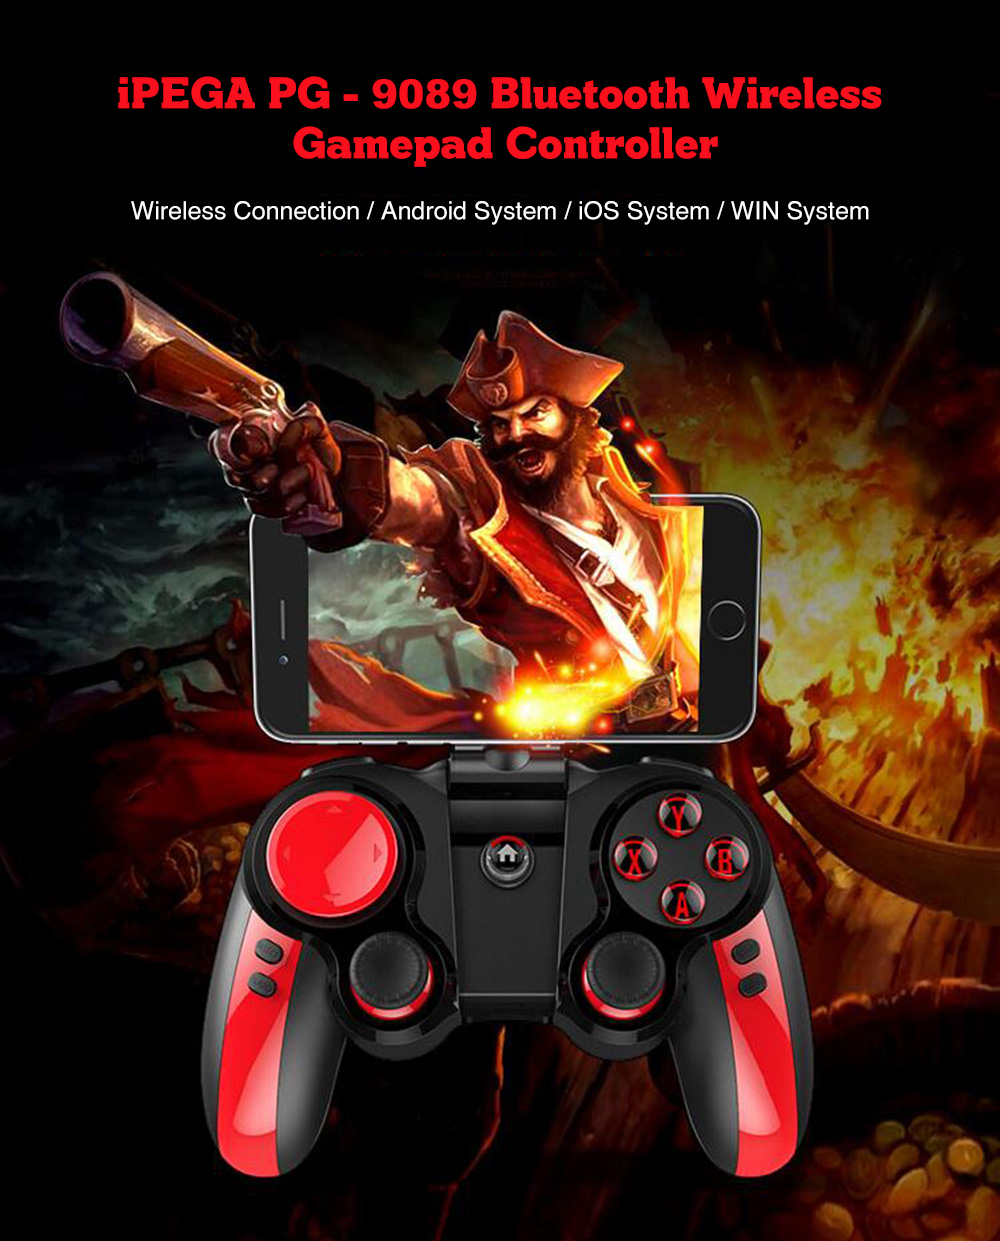 Gearbest Usa Ipega Pg 9089 Bluetooth Wireless Gamepad Controller Stick Android Mobile 9021 For Ios Pc Black